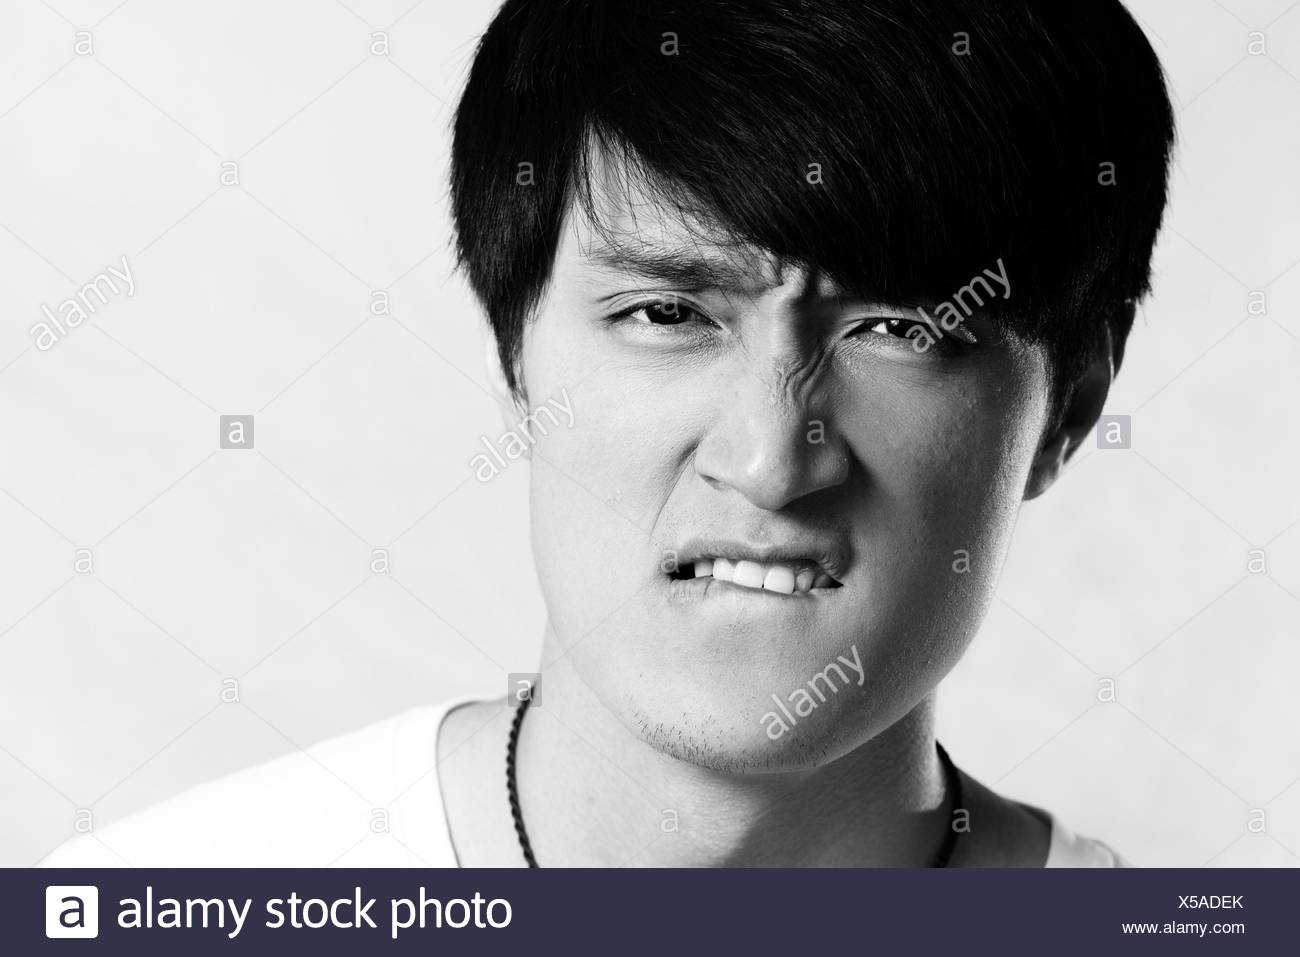 Young man looking angry - Stock Image